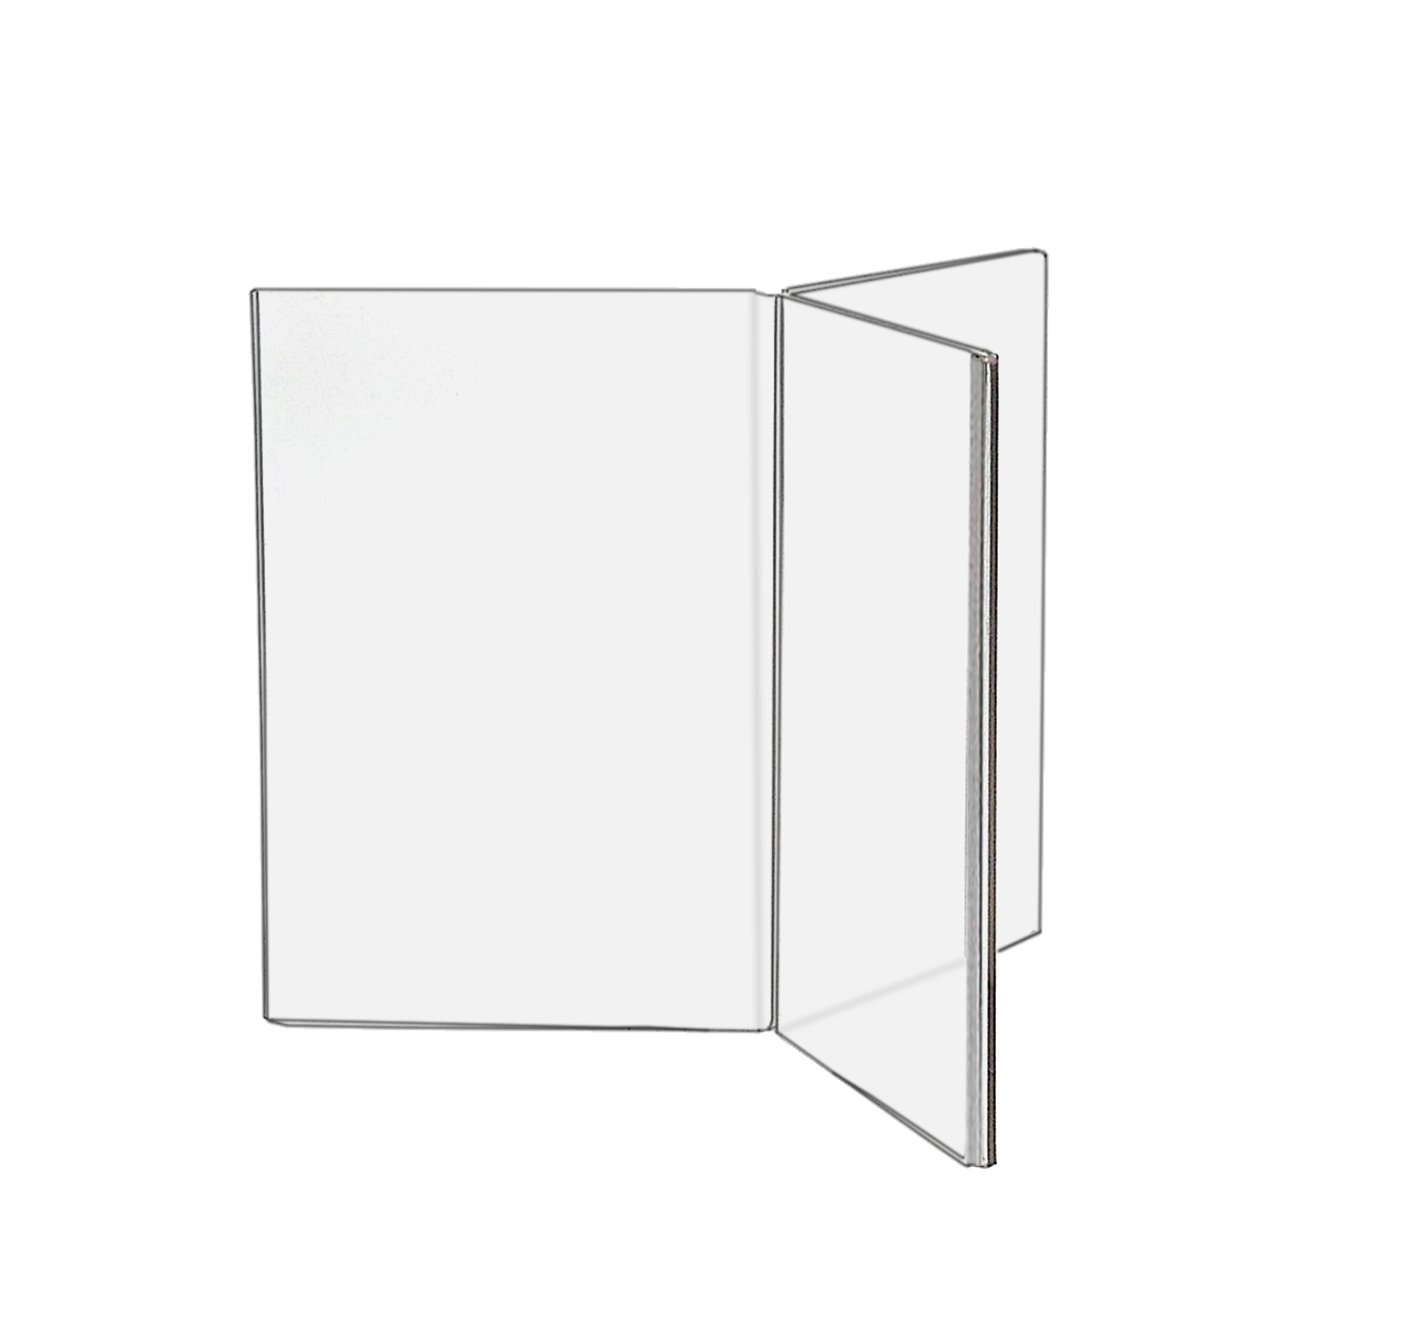 Marketing Holders 6-Sided Table Tent, 4'' w x 6'' h Inches for Menu Cards, Table Signs, Advertisements & POP Signs Lot of 6